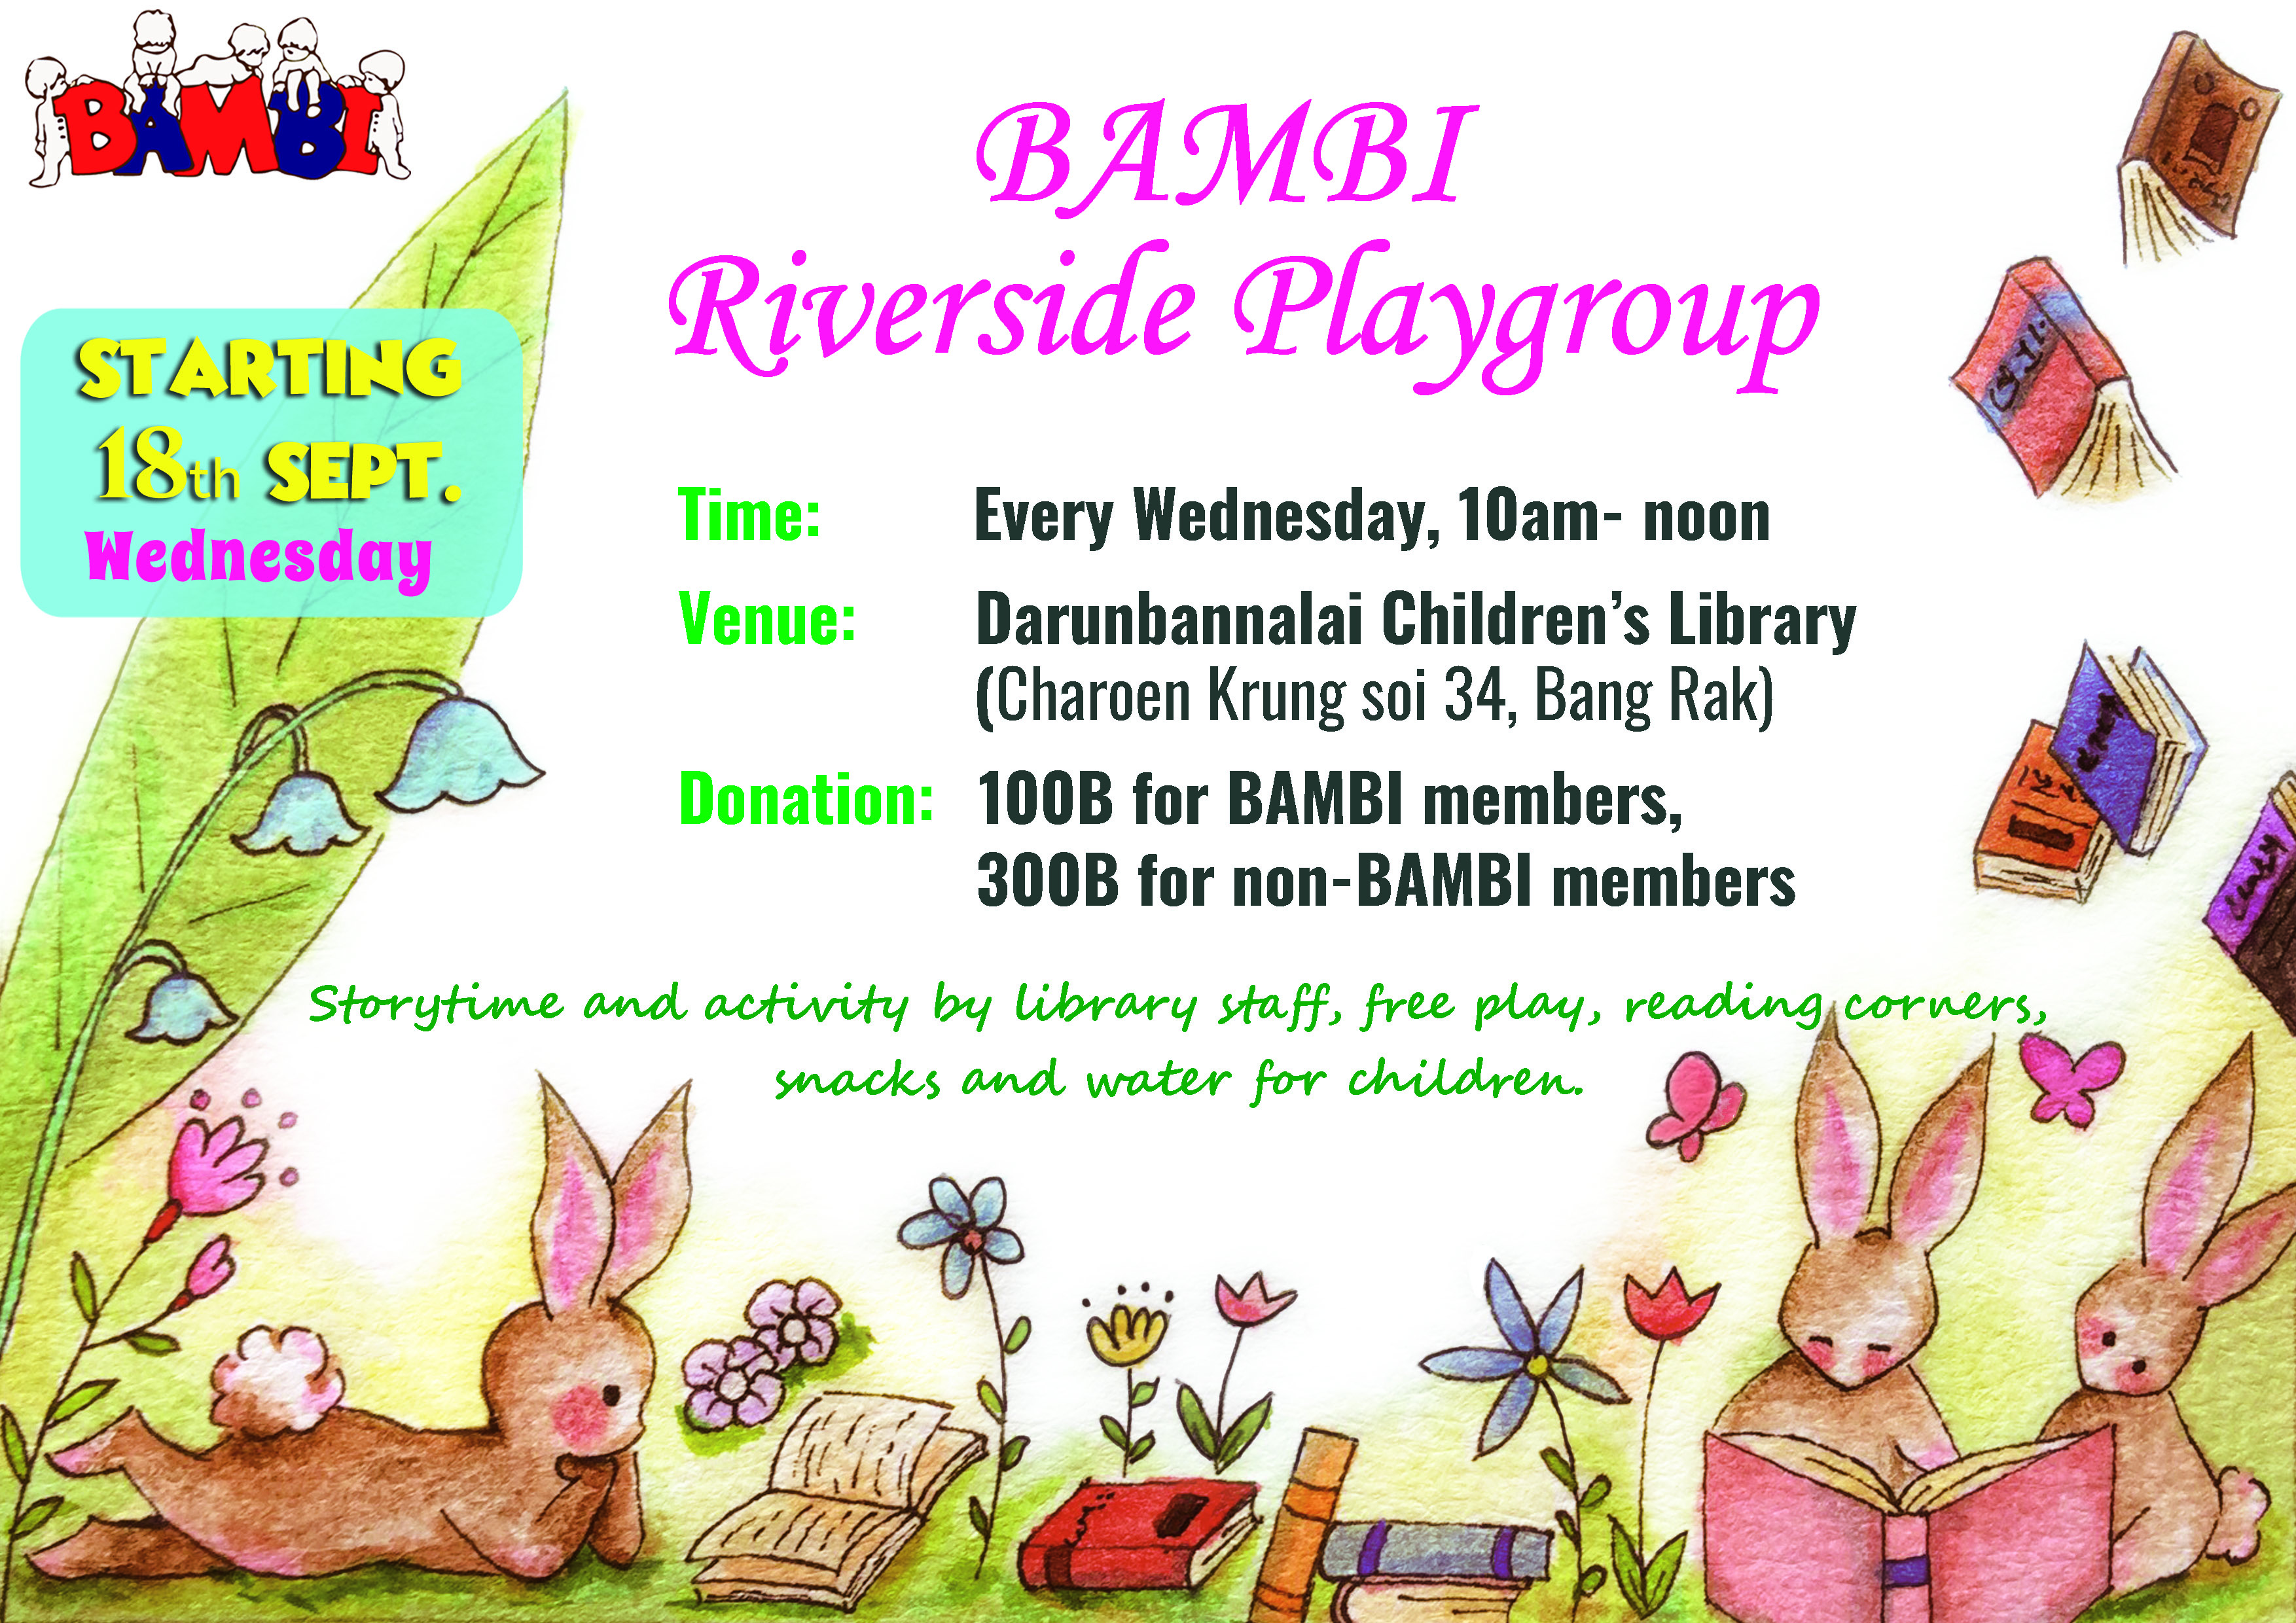 Bambi Riverside Playgroup